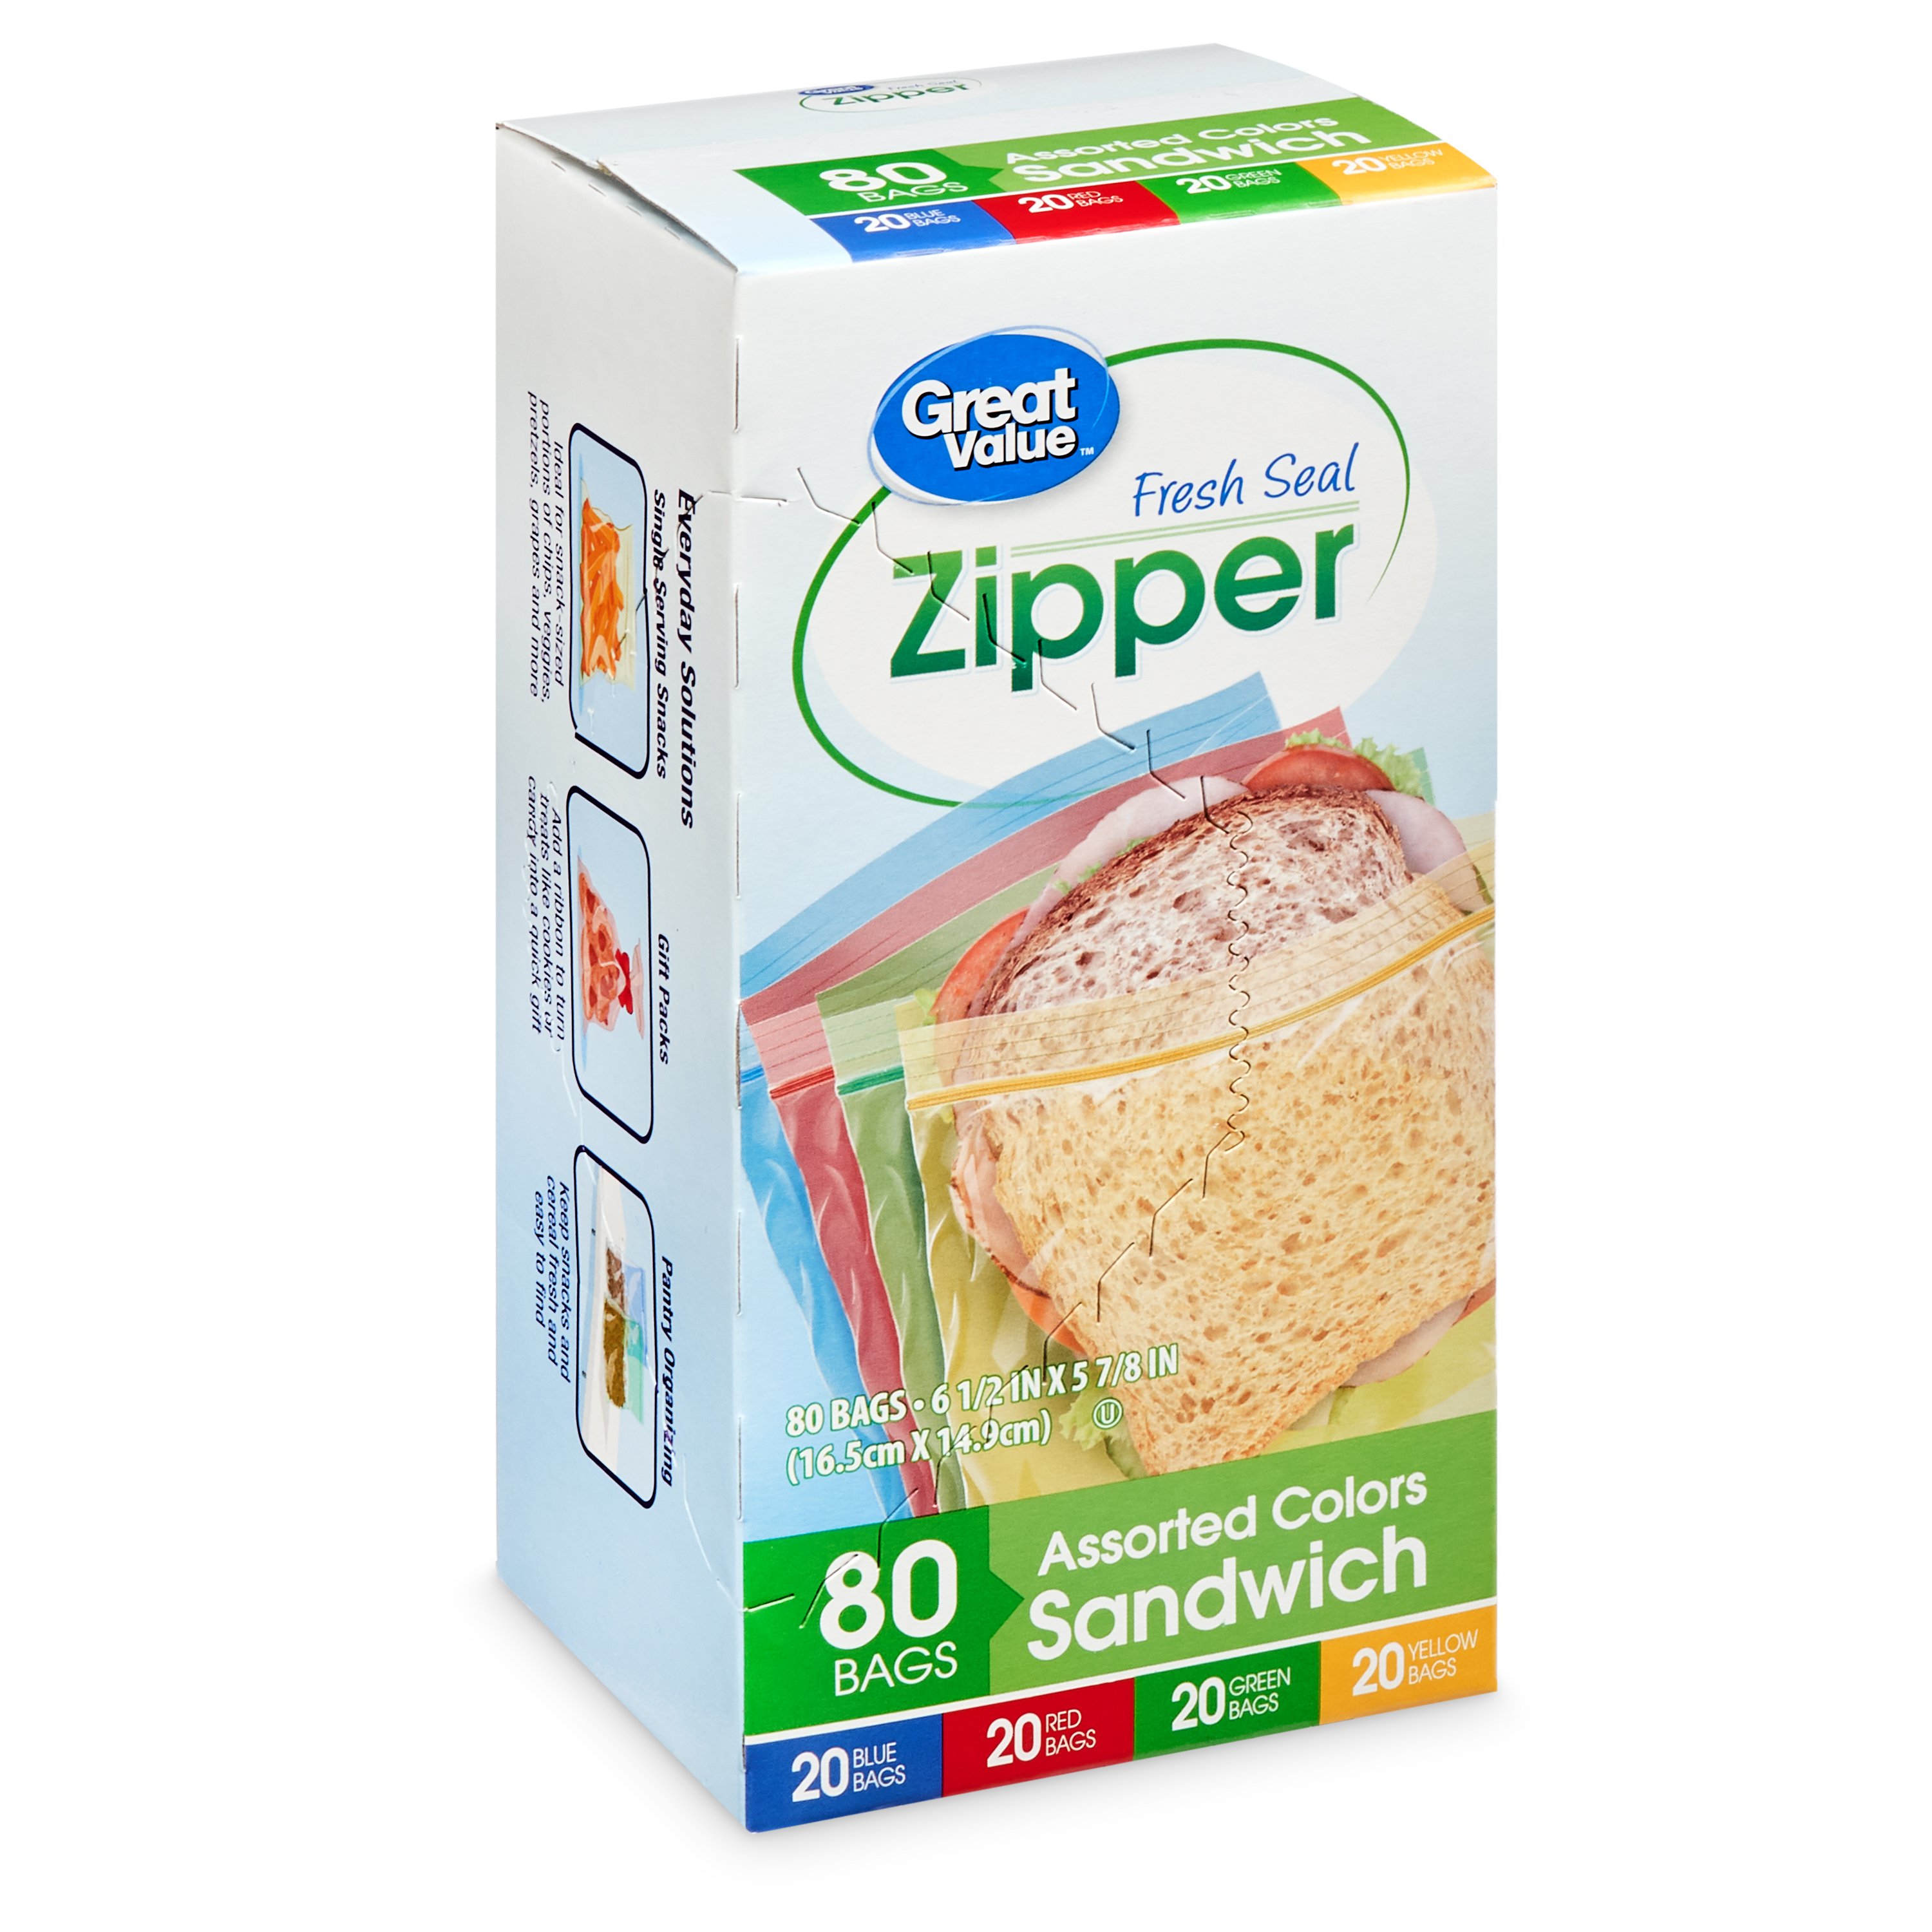 Great Value Fresh Seal Zipper Sandwich Bags, 80 Count, Assorted Colors